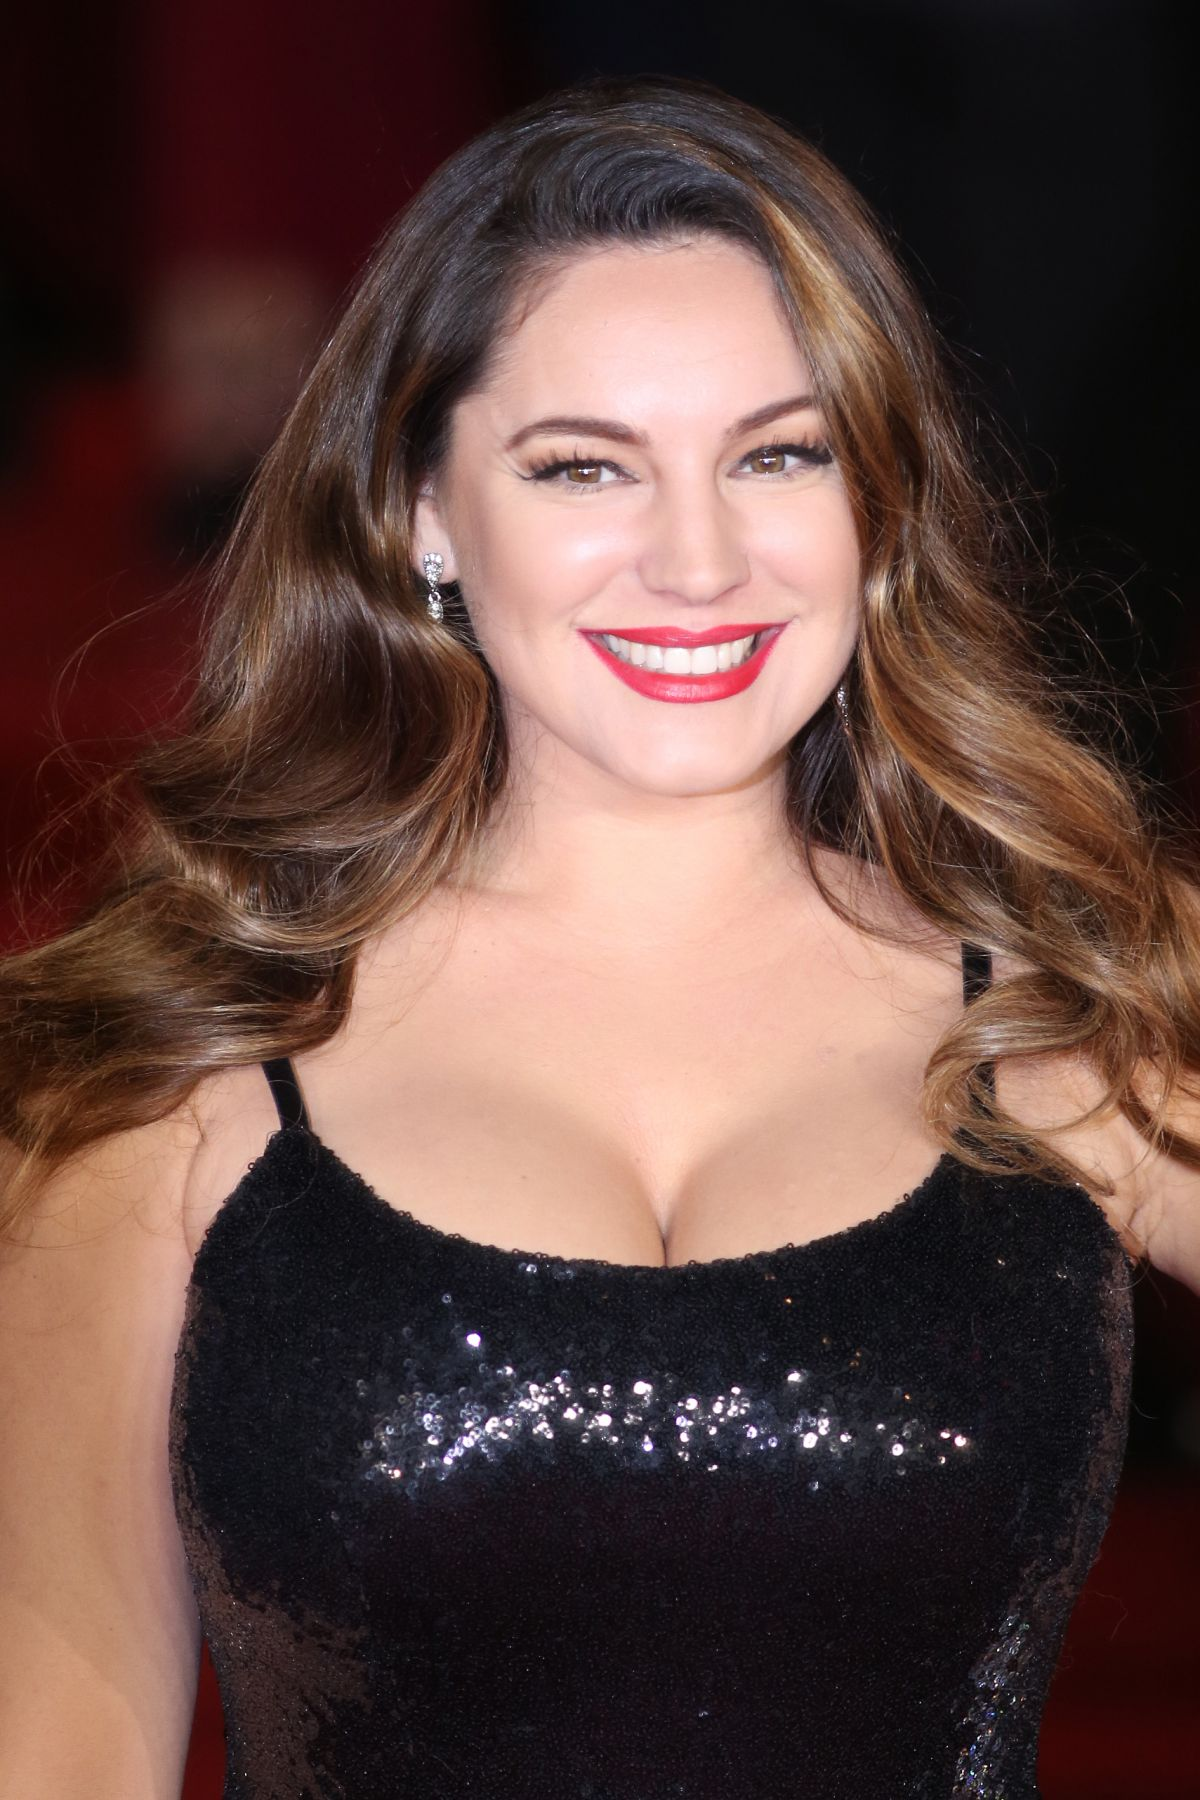 kelly brook - photo #21